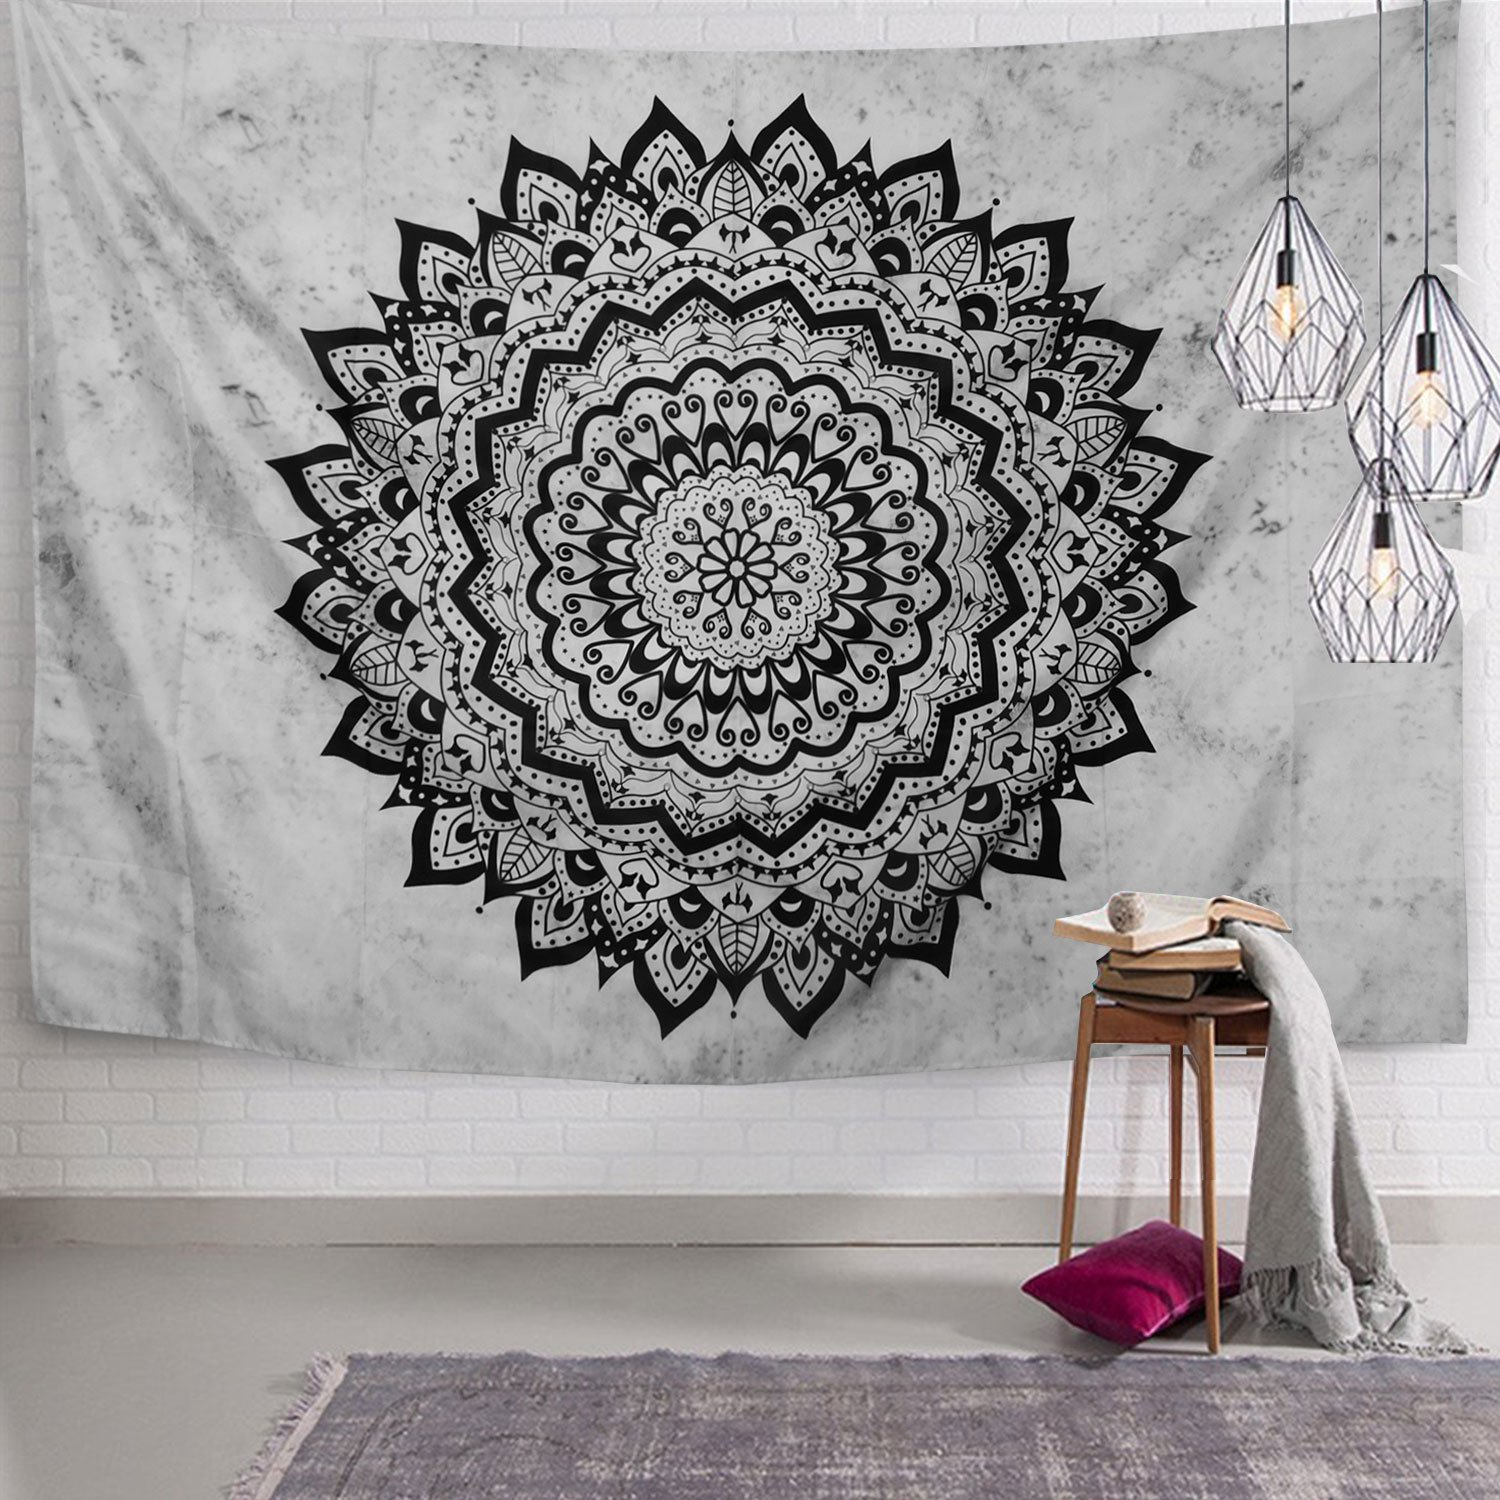 Sunm boutique Indian Mandala Tapestry Wall Hanging Hippie Bohemian Flower Psychedelic Tapestries Home Decor